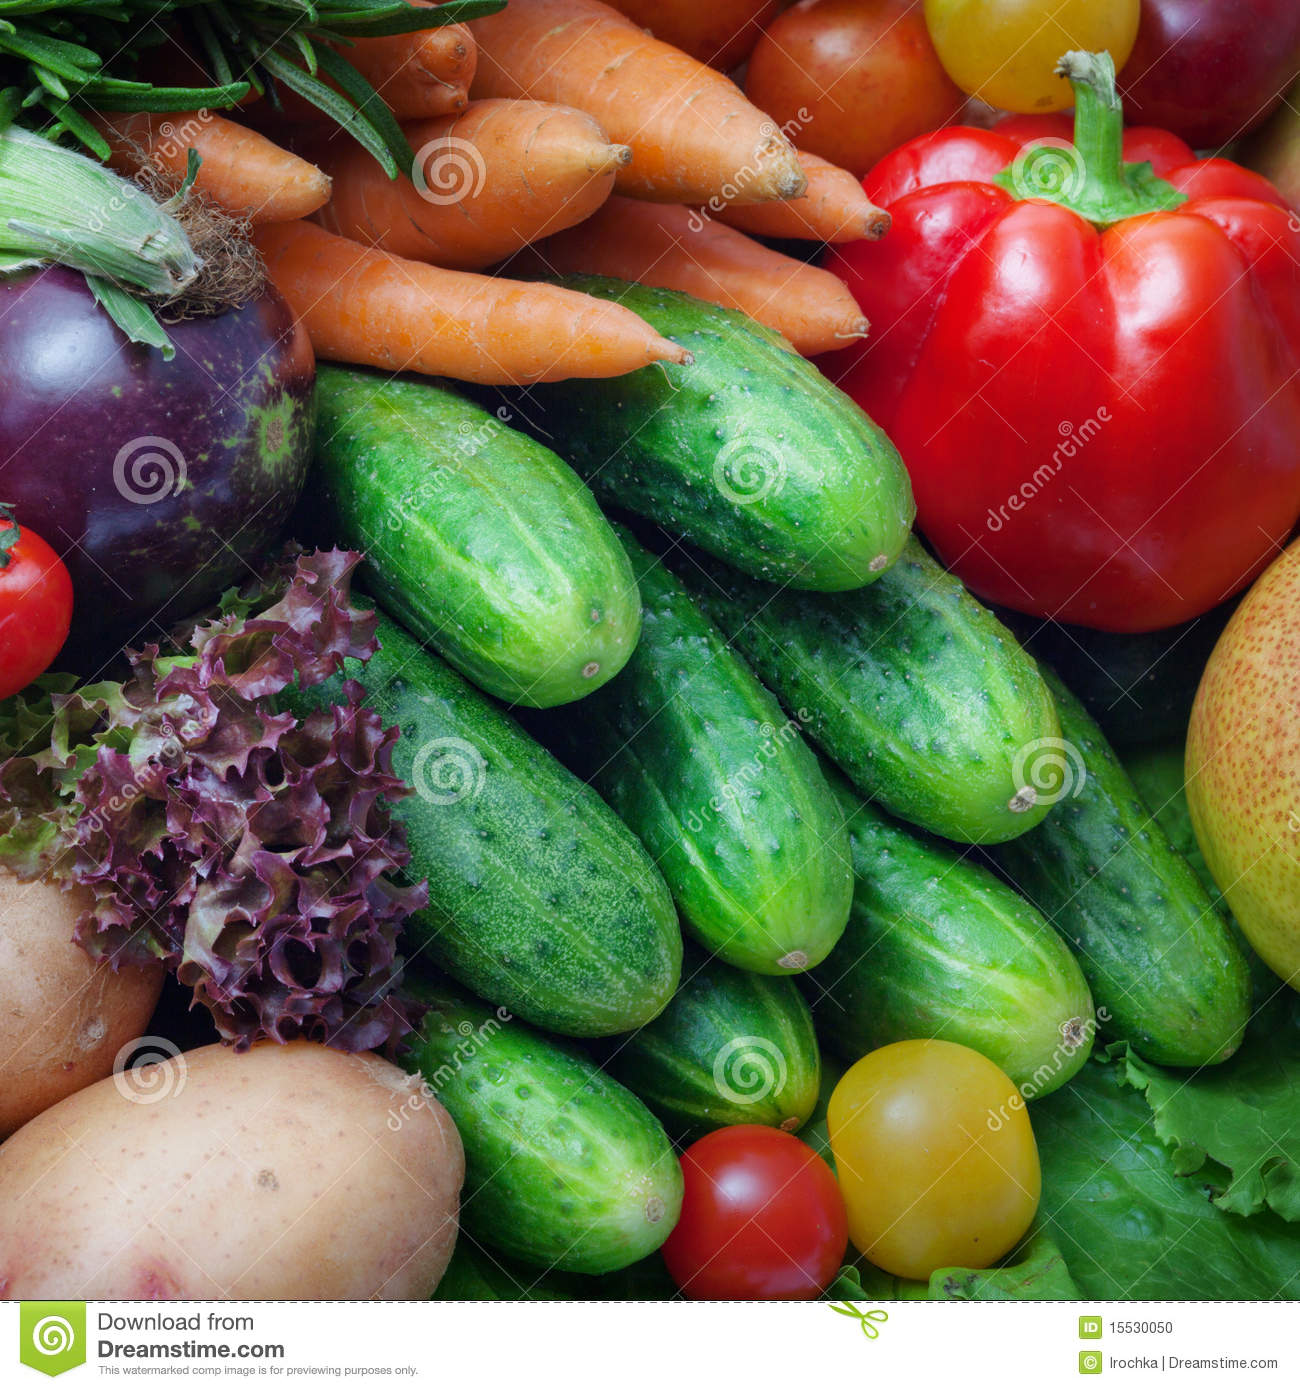 Pictures of Whole Fresh Vegetables